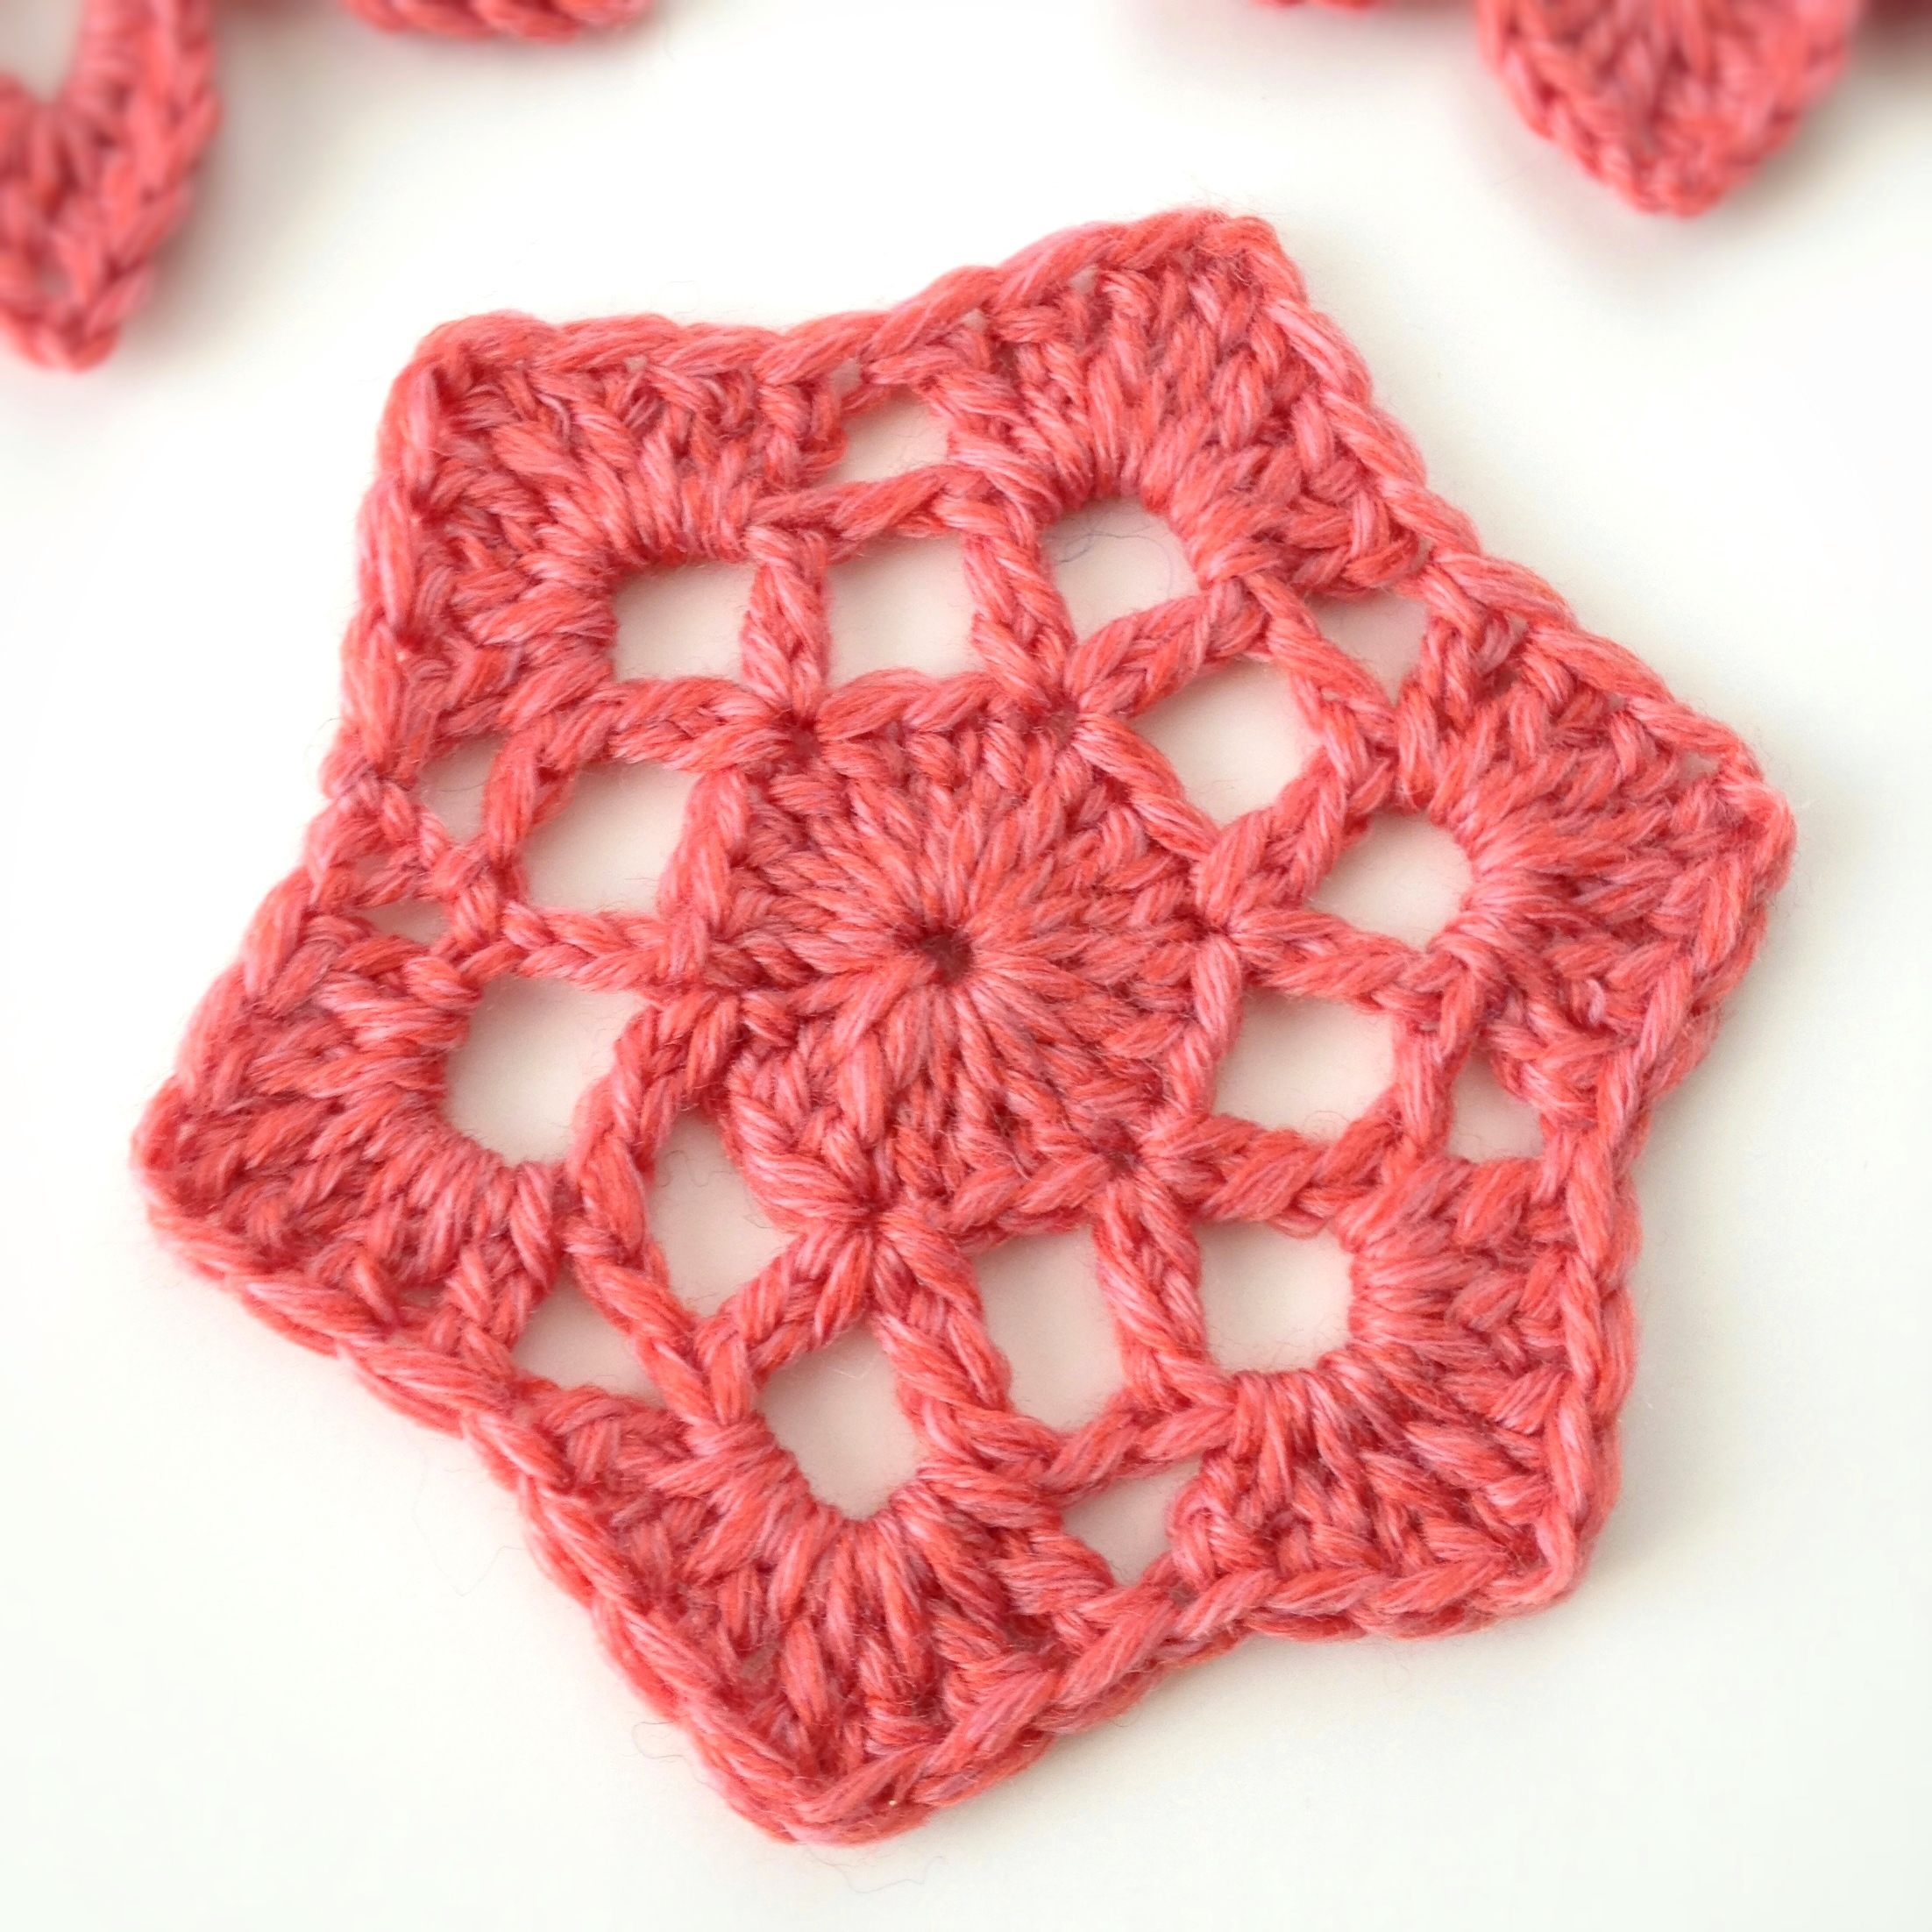 Video On How To Crochet : Crochet motif #53 from ?Beyond the Square Crochet Motifs?